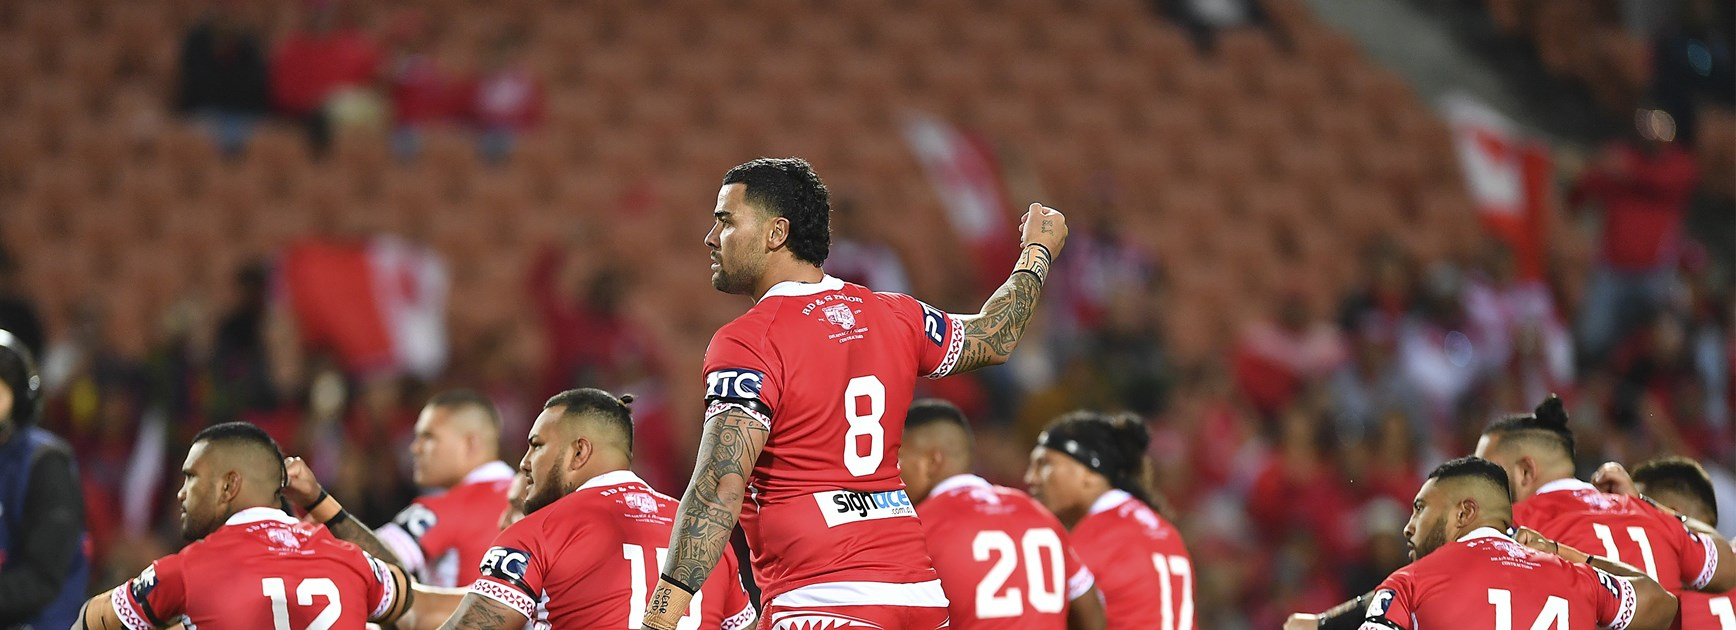 Shark against Shark in Aust-Tonga clash